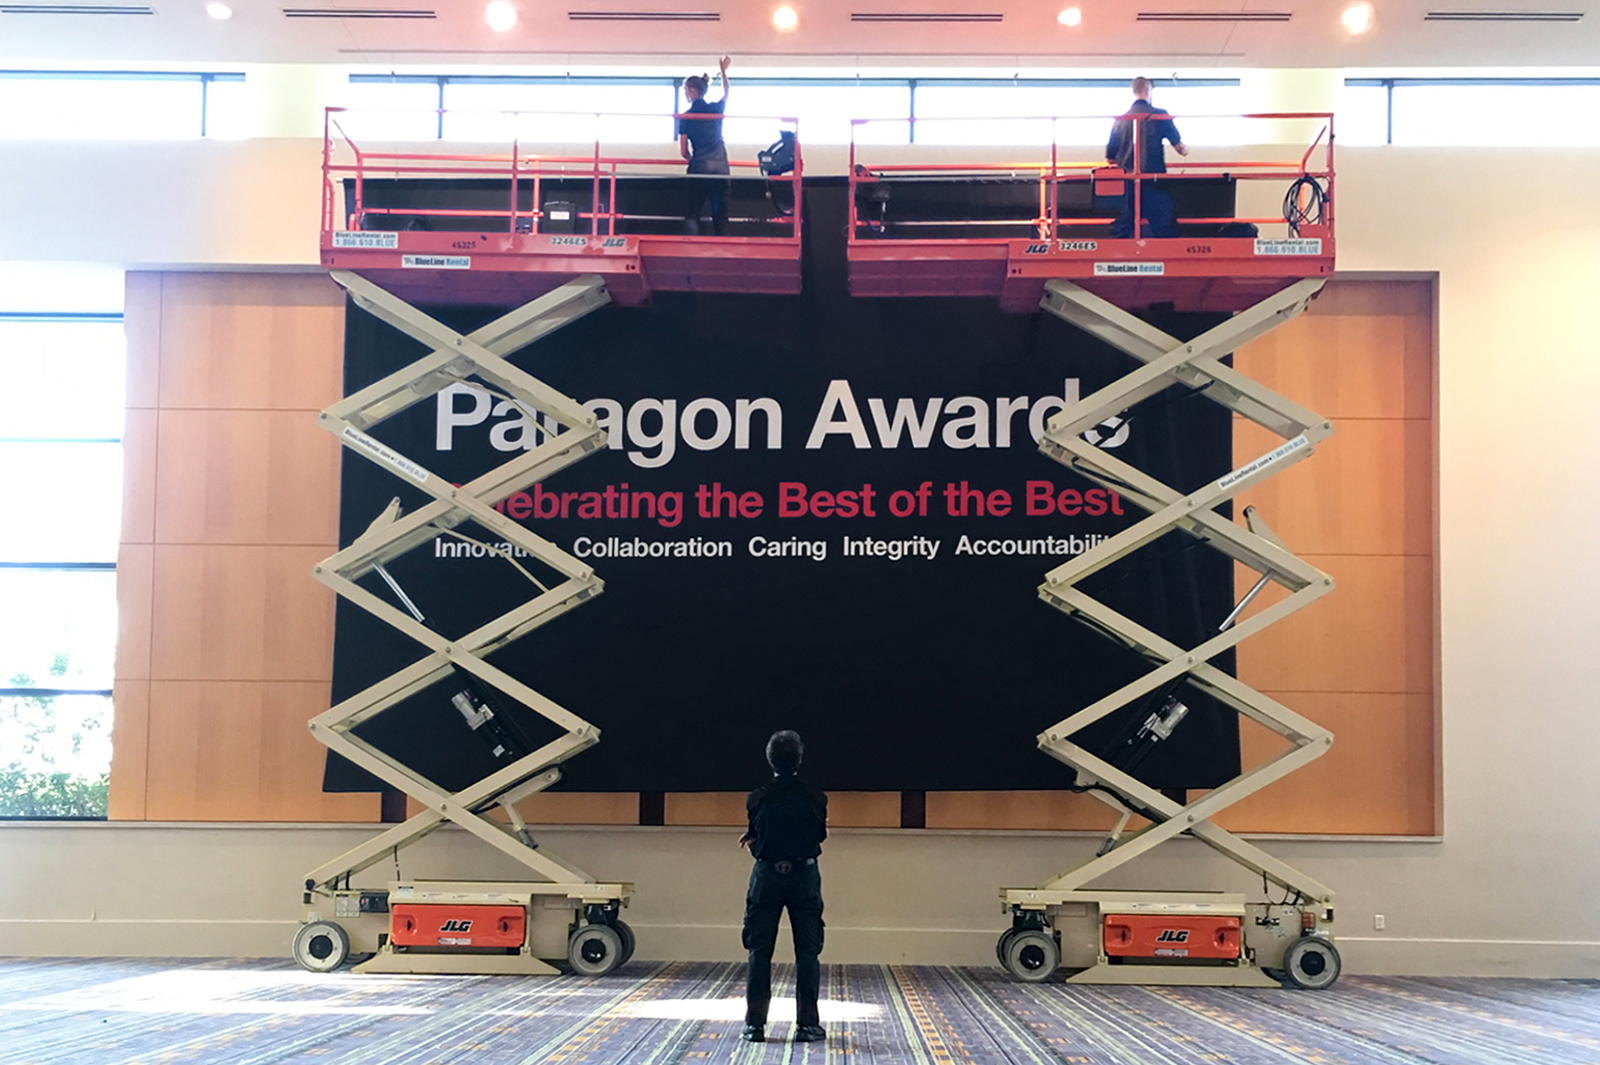 CVS Paragon Awards banner being raised by add ventures crews with cherry pickers.